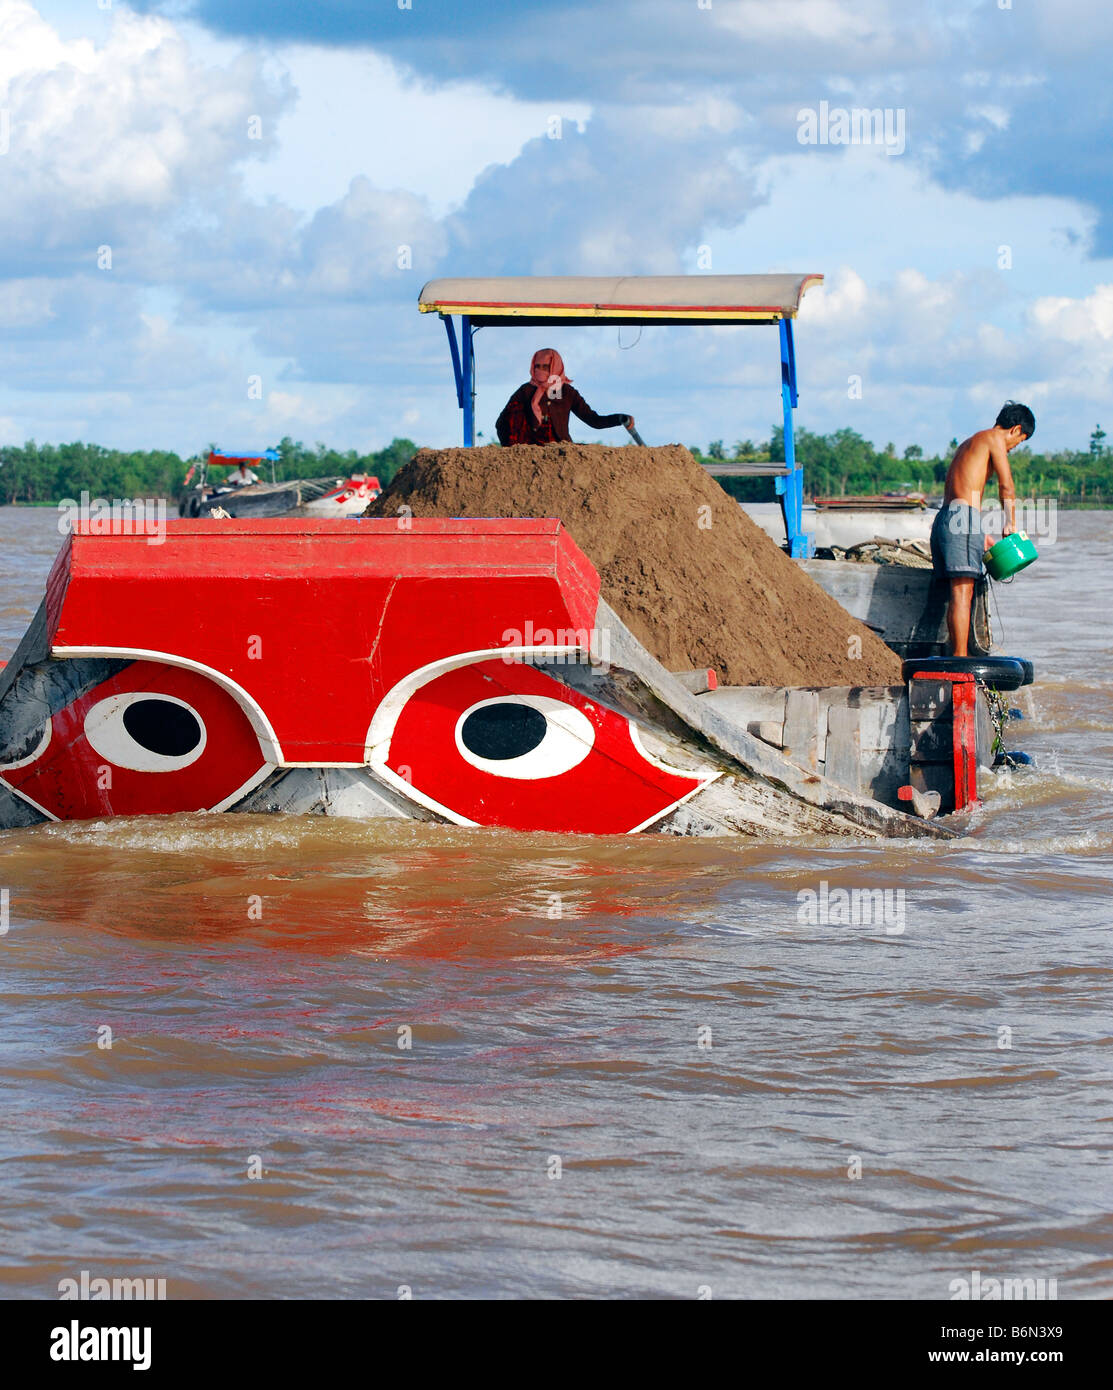 Brightly coloured red river boat carrying topsoil,  Tien Giang River, Mekong Delta, Vietnam - Stock Image